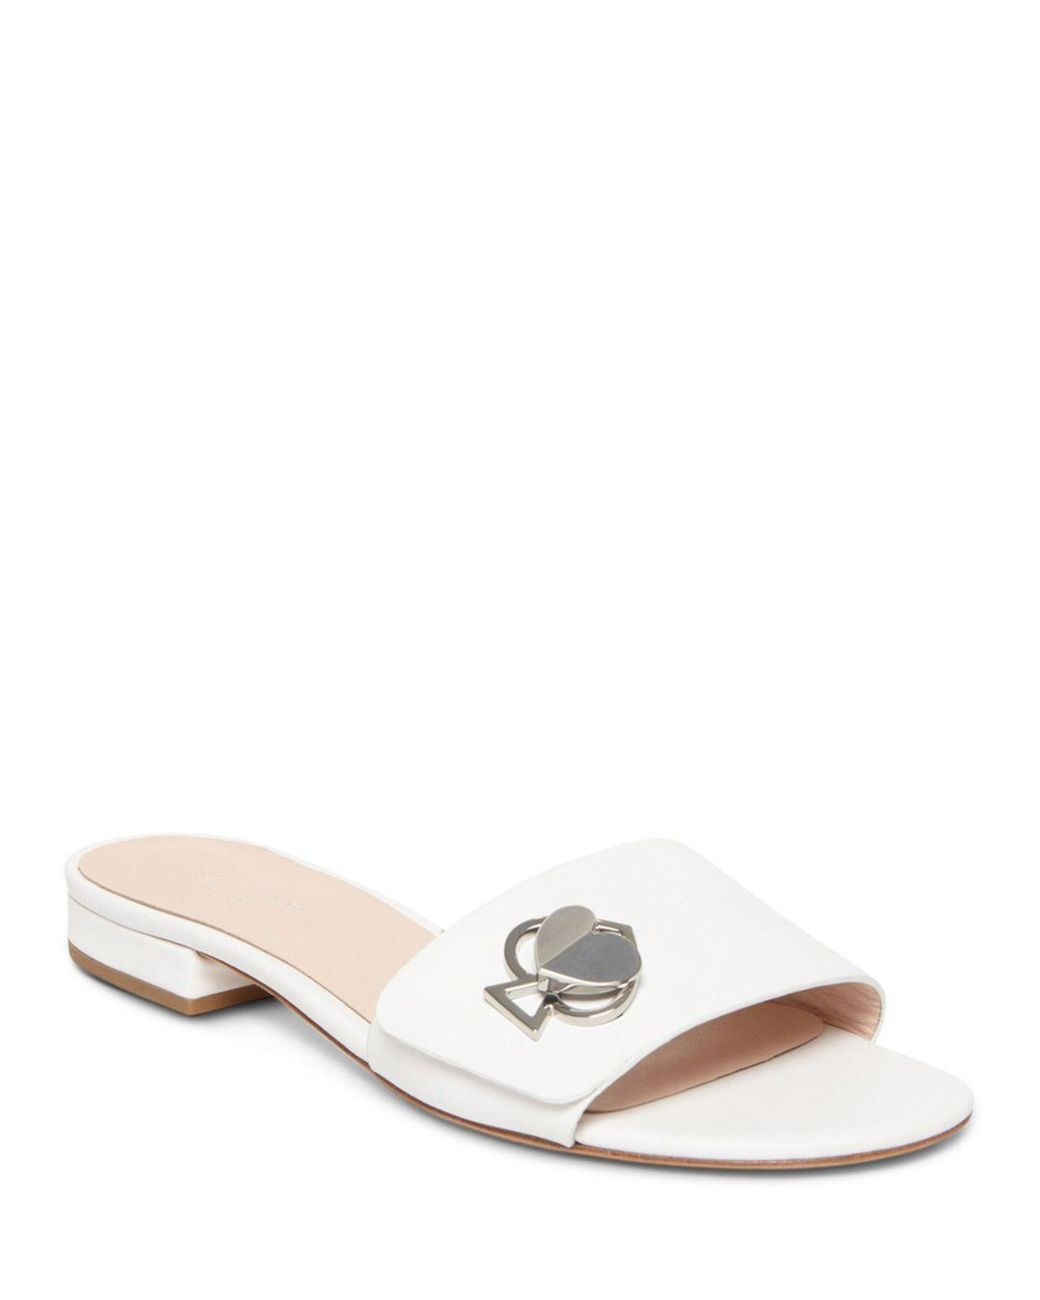 Kate Sandals Women's Ferry Slide Lyst White In Spade E29DYWIH